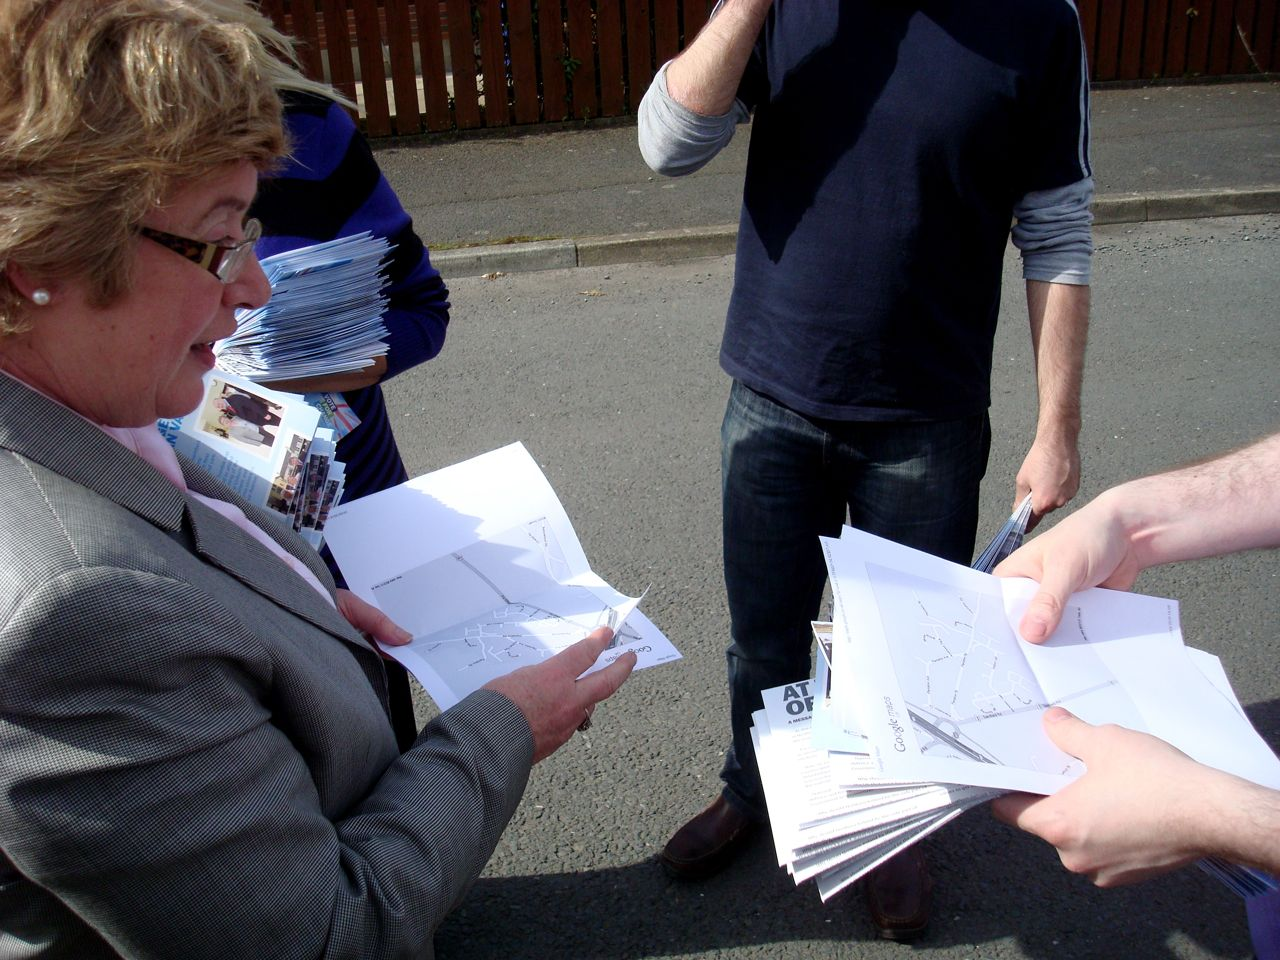 UCUNF's Daphne Trimble and canvassing team consulting the street map before setting off around the doors